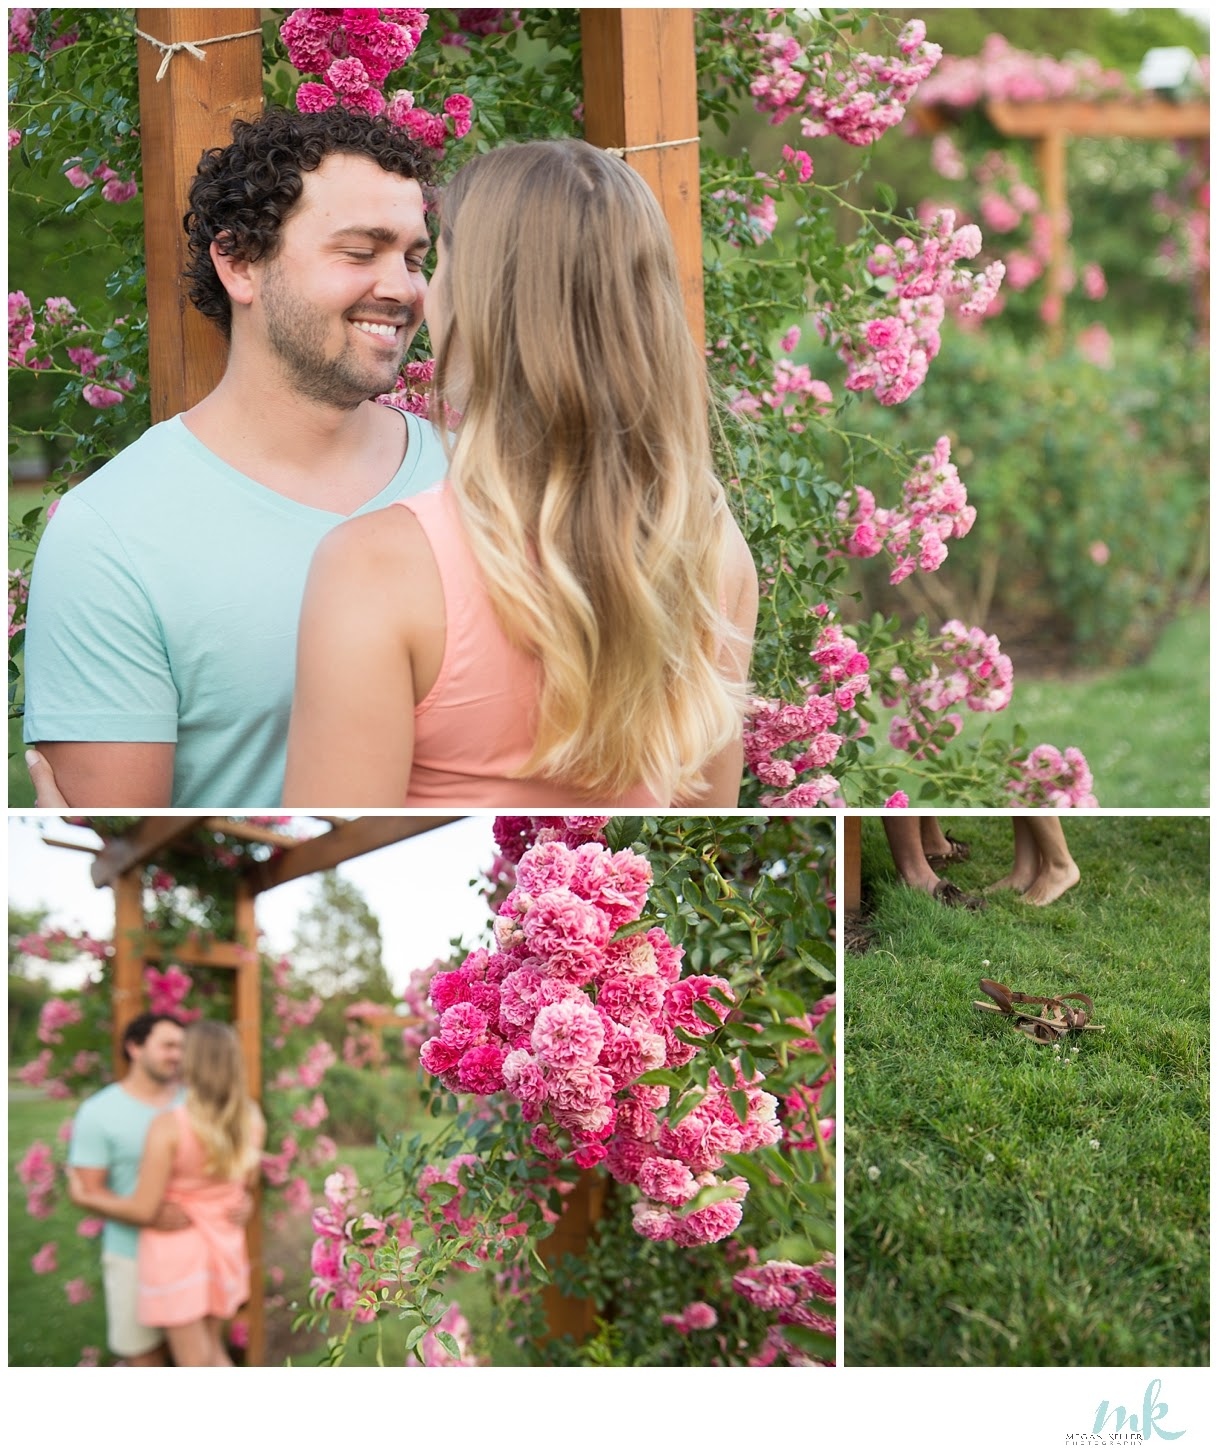 Breanna and Lucas Engagement Session Breanna and Lucas Engagement Session 2014 07 02 0009